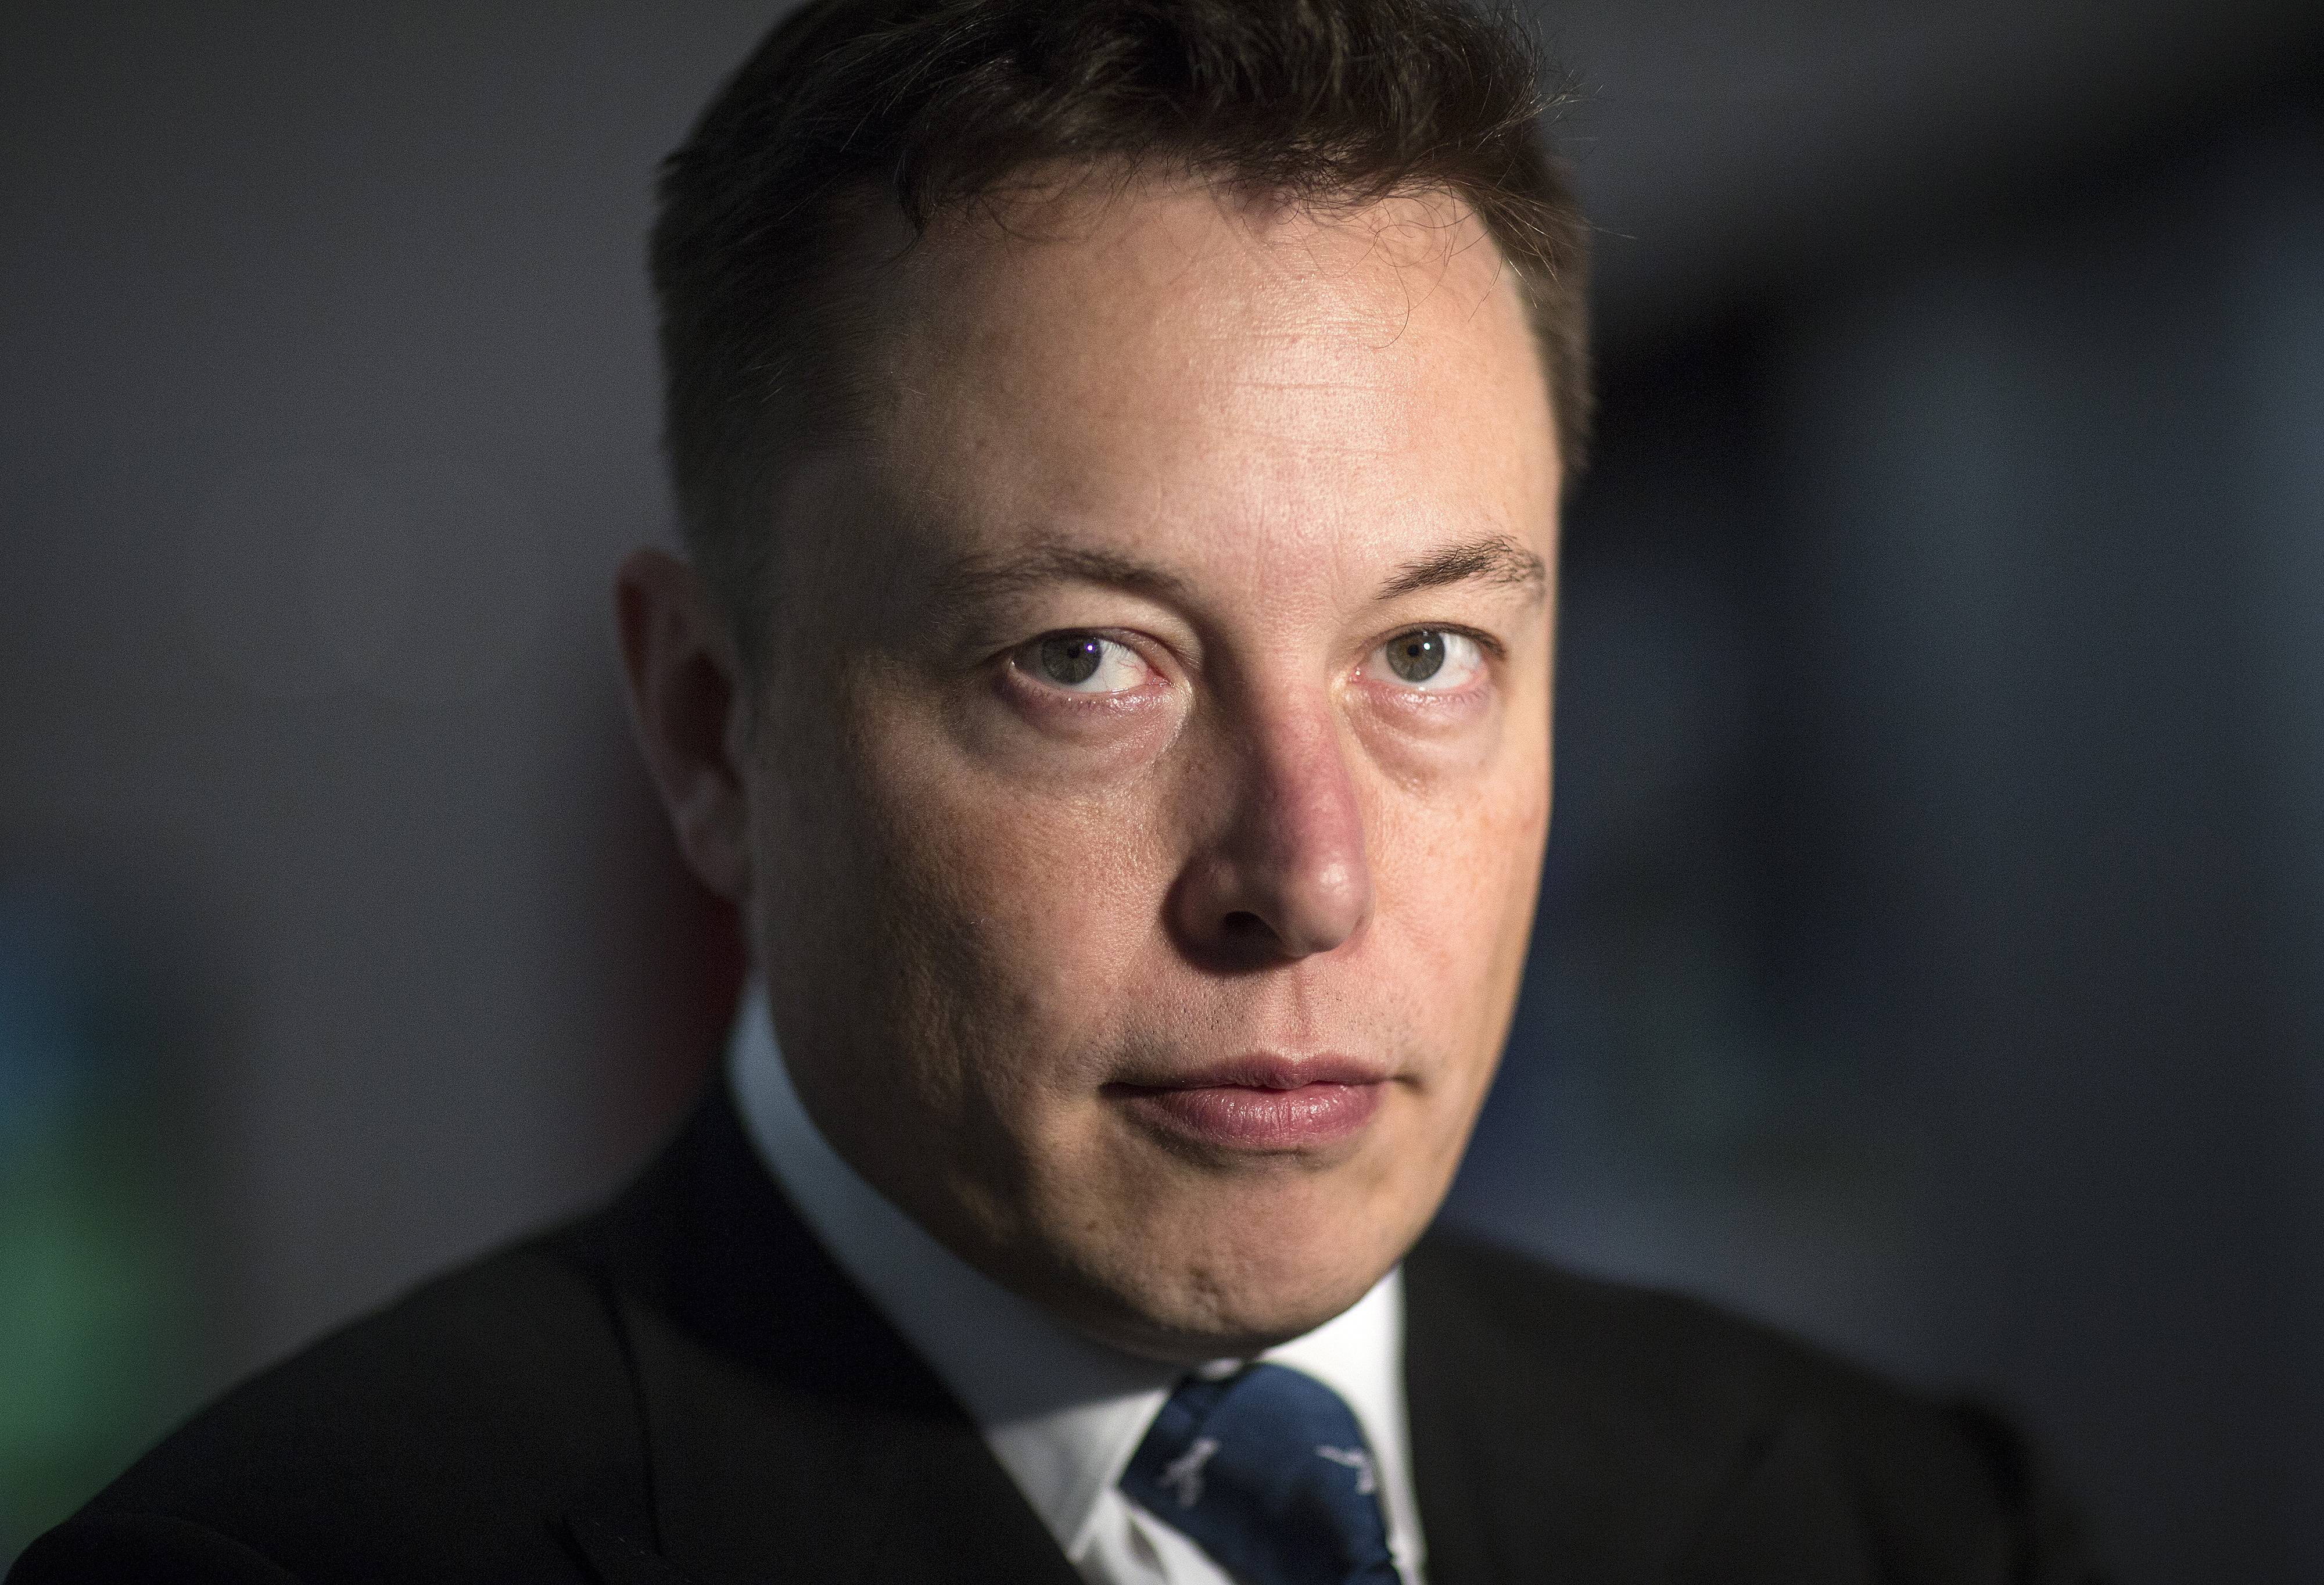 The Air Force is examining several anomalies that occurred during Space Exploration Technologies Corp.'s three civilian space flights as part of its review of billionaire Elon Musk's quest to launch military satellites.